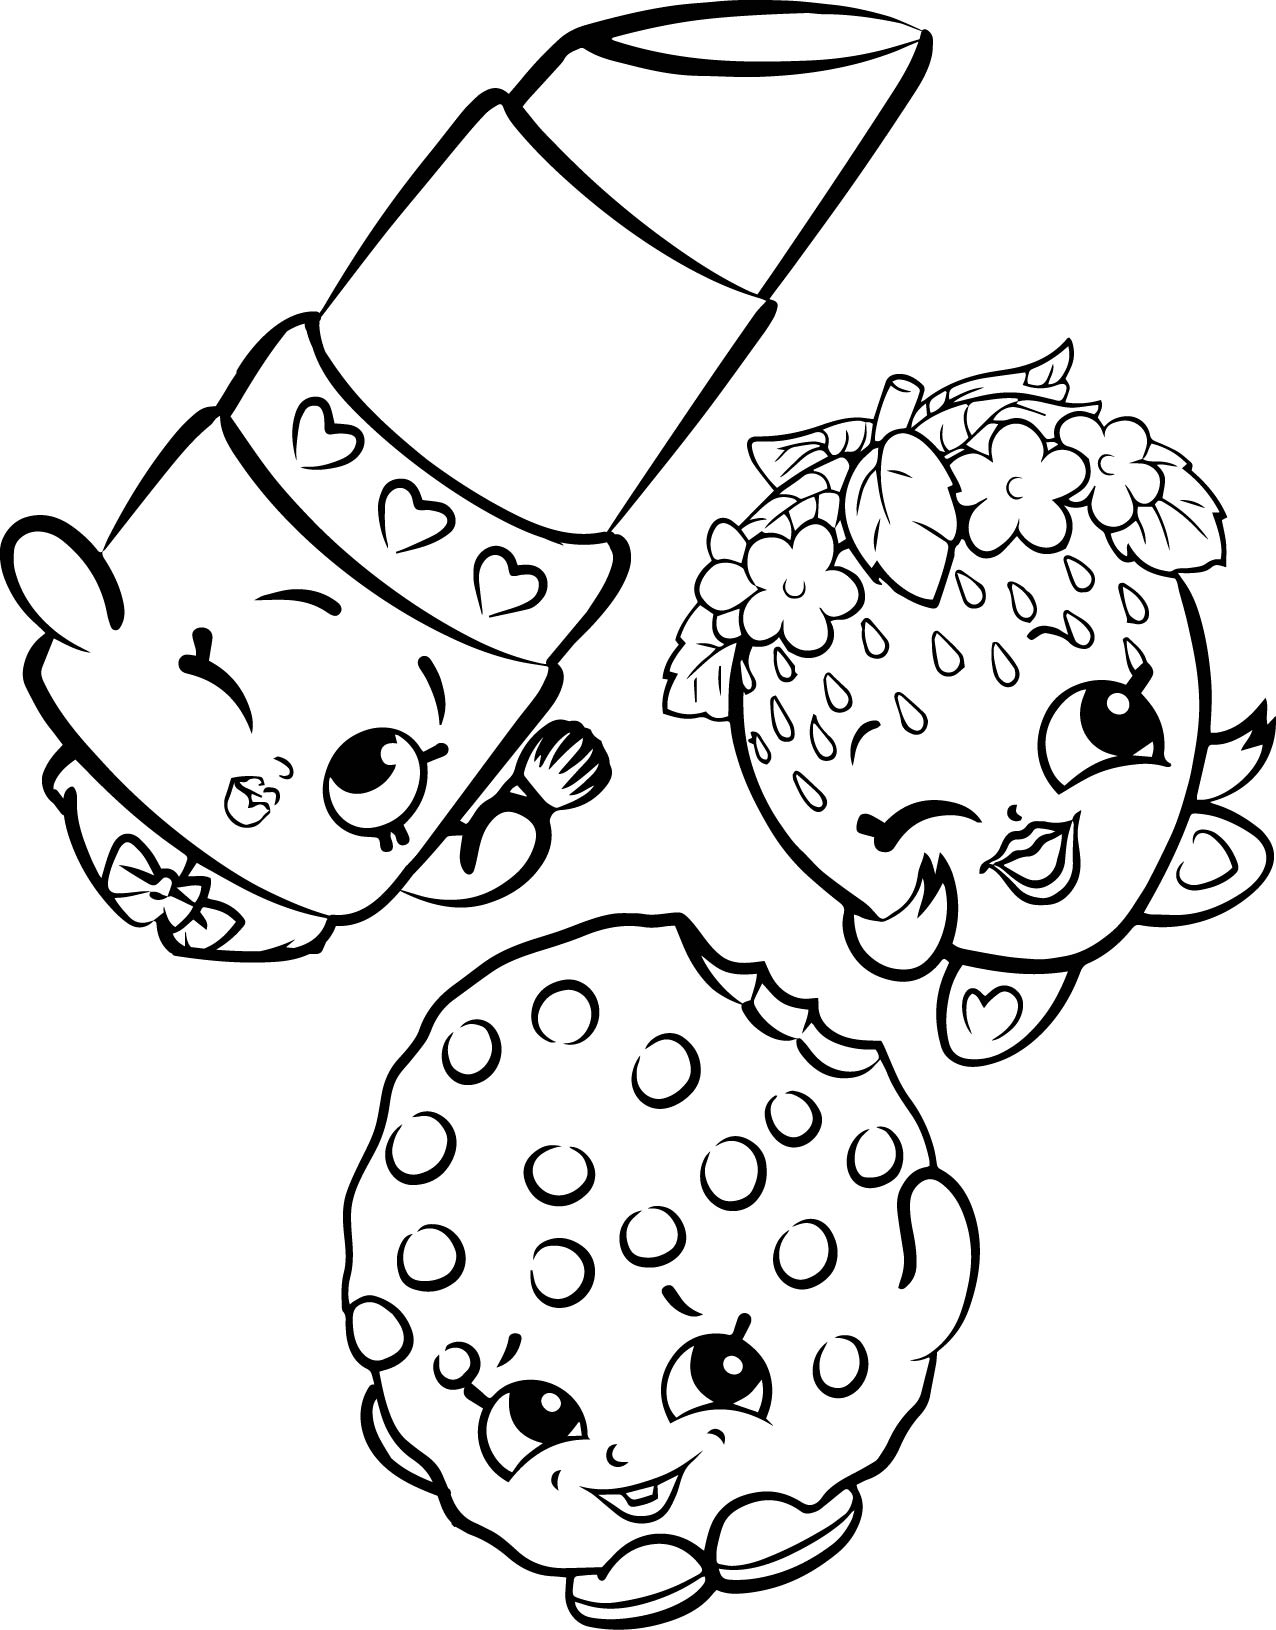 Free Shopkins Printables Coloring Pages Download 4 Shopkins Printable Of Free Shopkins Printables Coloring Pages Download 4 Shopkins Printable